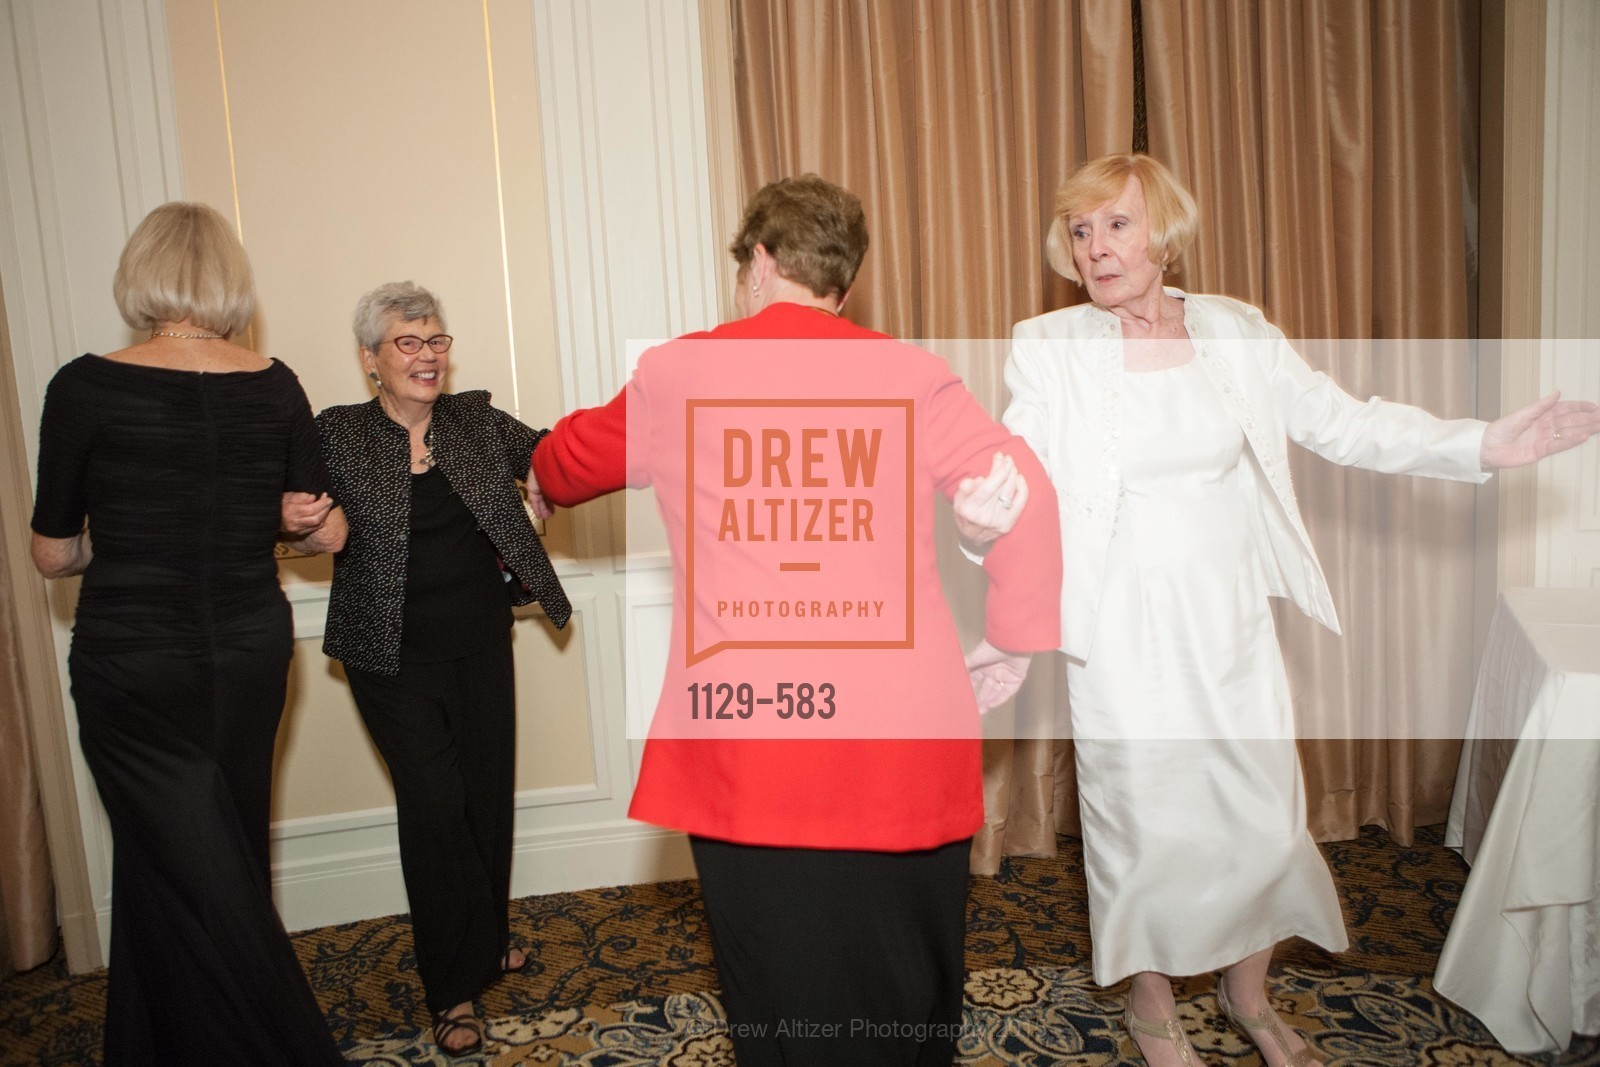 Diana Sworakowski, Jane Standing, Pamela Sweetman, Betty Legan, St. Andrew's Society of San Francisco Annual Banquet and Ball 2015, Marines' Memorial Club & Hotel. 609 Sutter St, November 28th, 2015,Drew Altizer, Drew Altizer Photography, full-service event agency, private events, San Francisco photographer, photographer California